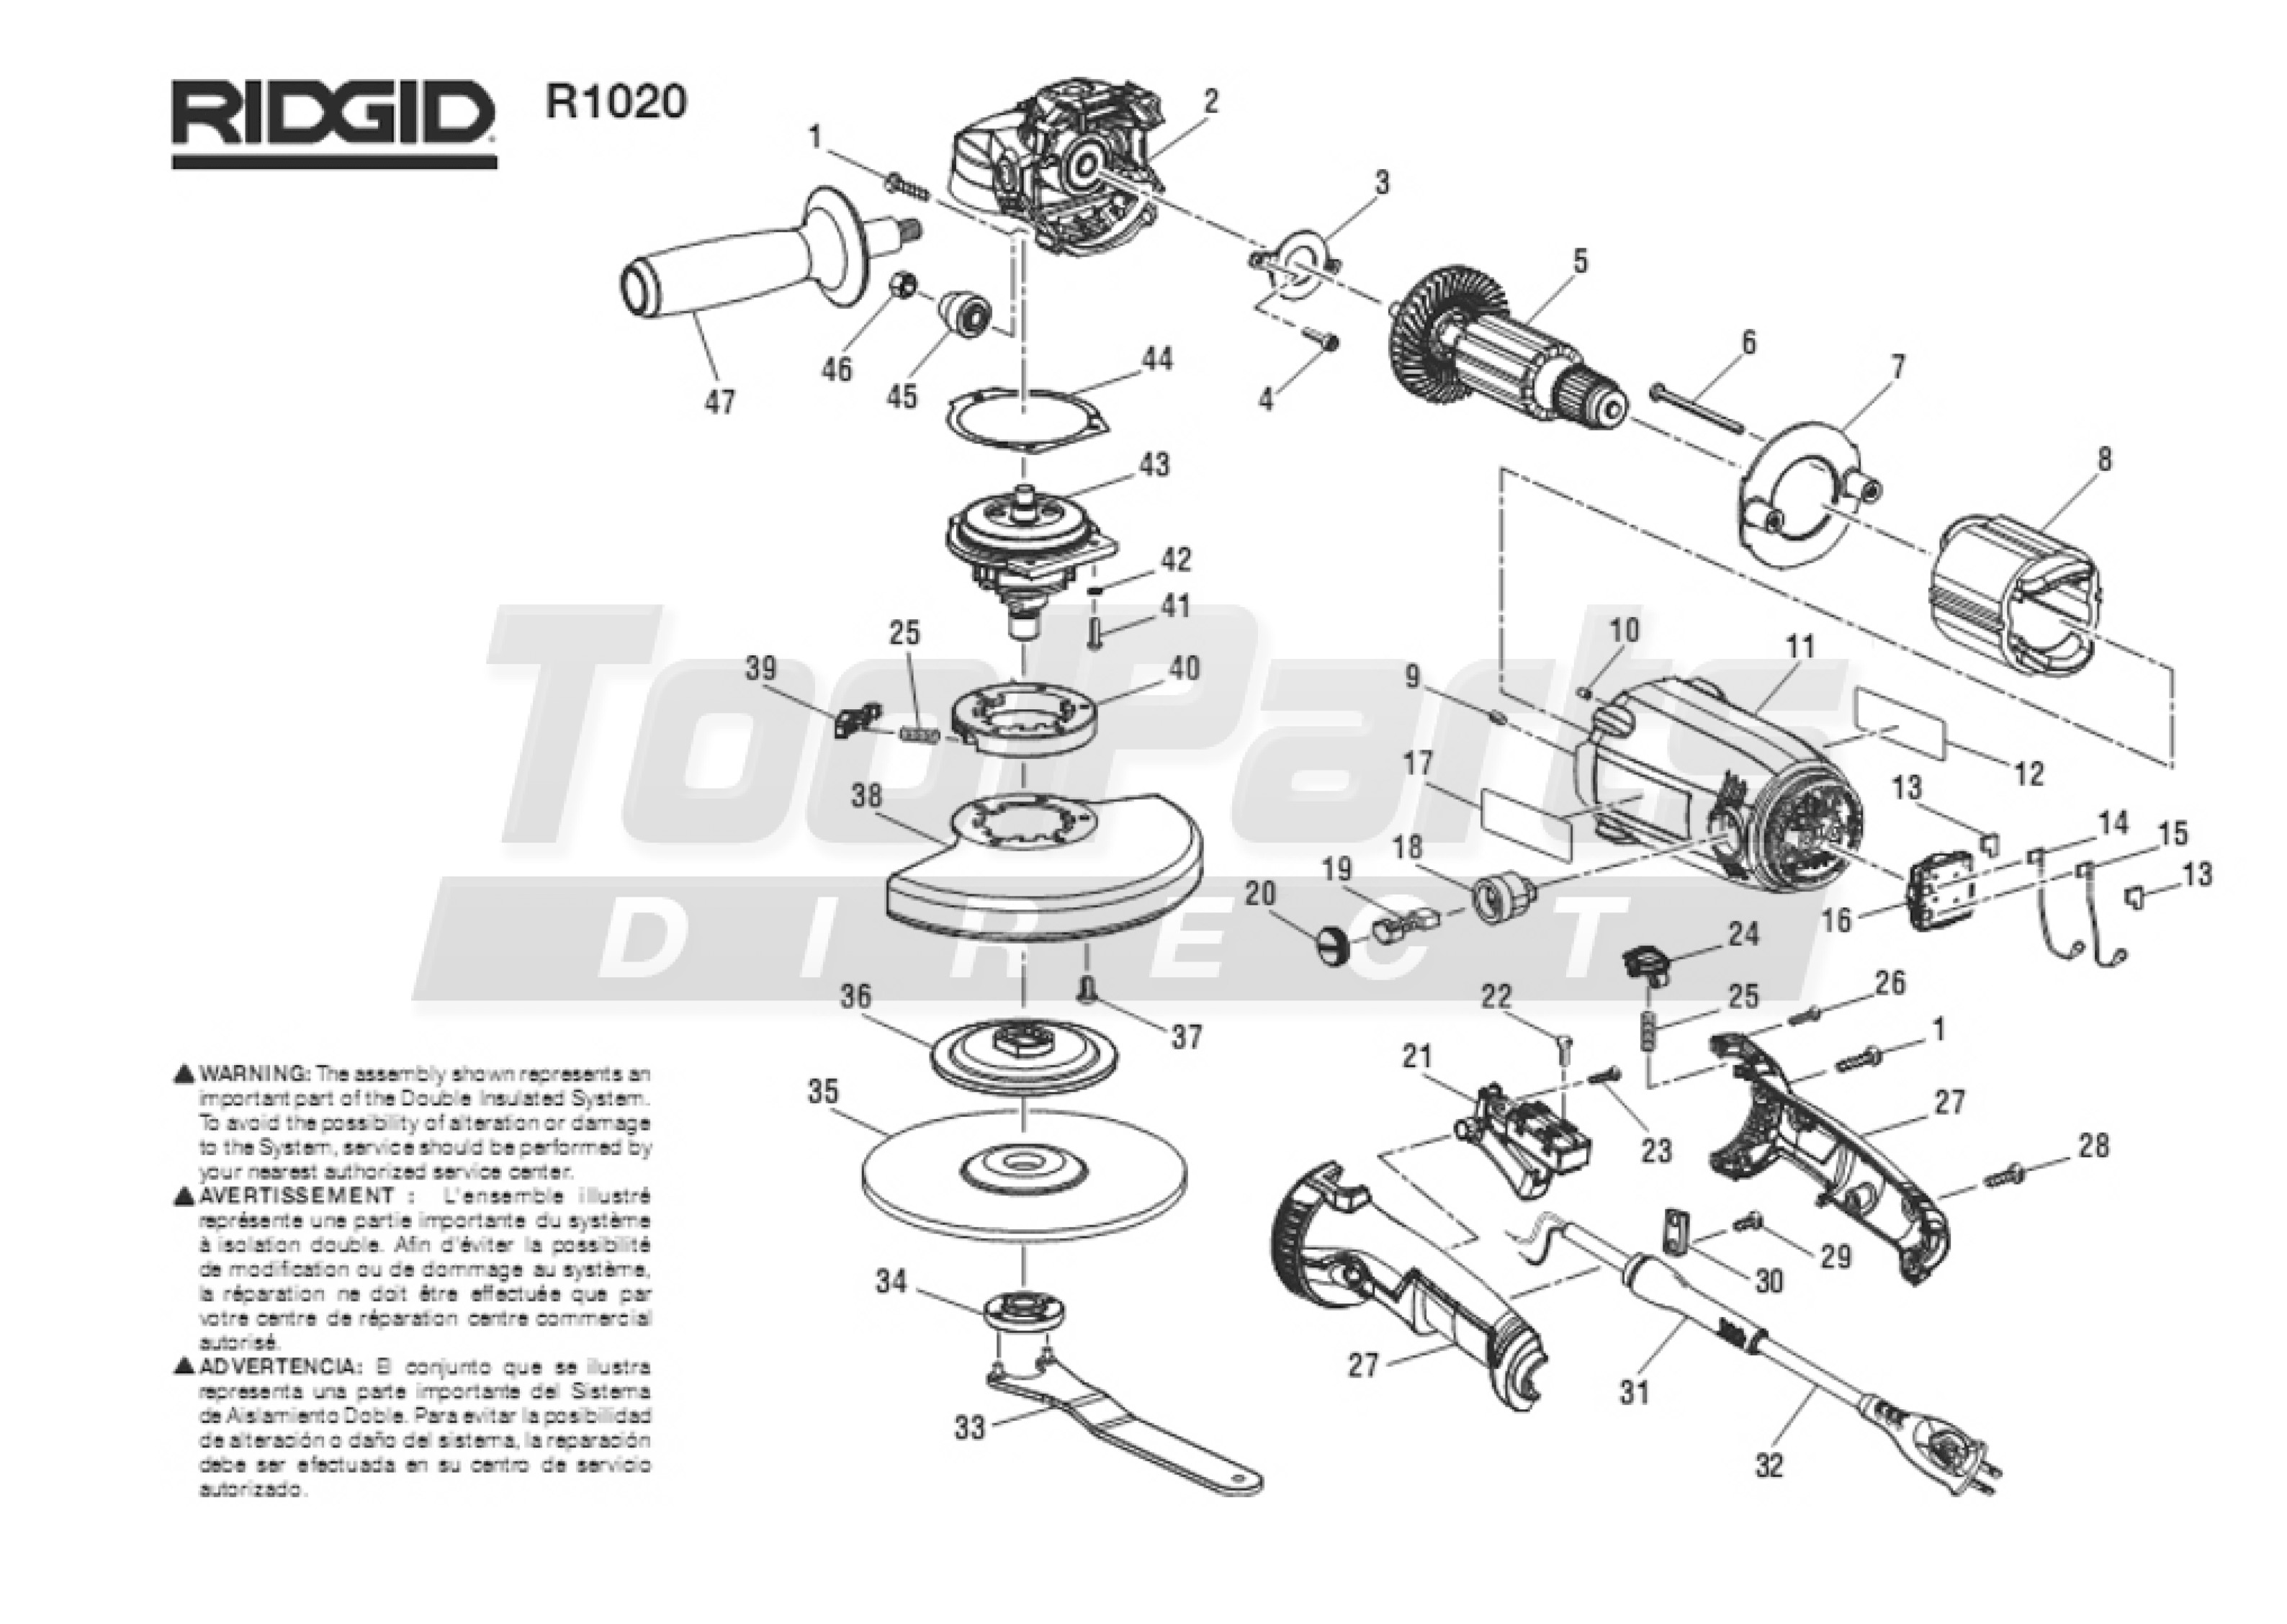 Bosch Jigsaw Parts Diagram Ridgid R1020 Ridgid Angle Grinder Parts Of Bosch Jigsaw Parts Diagram